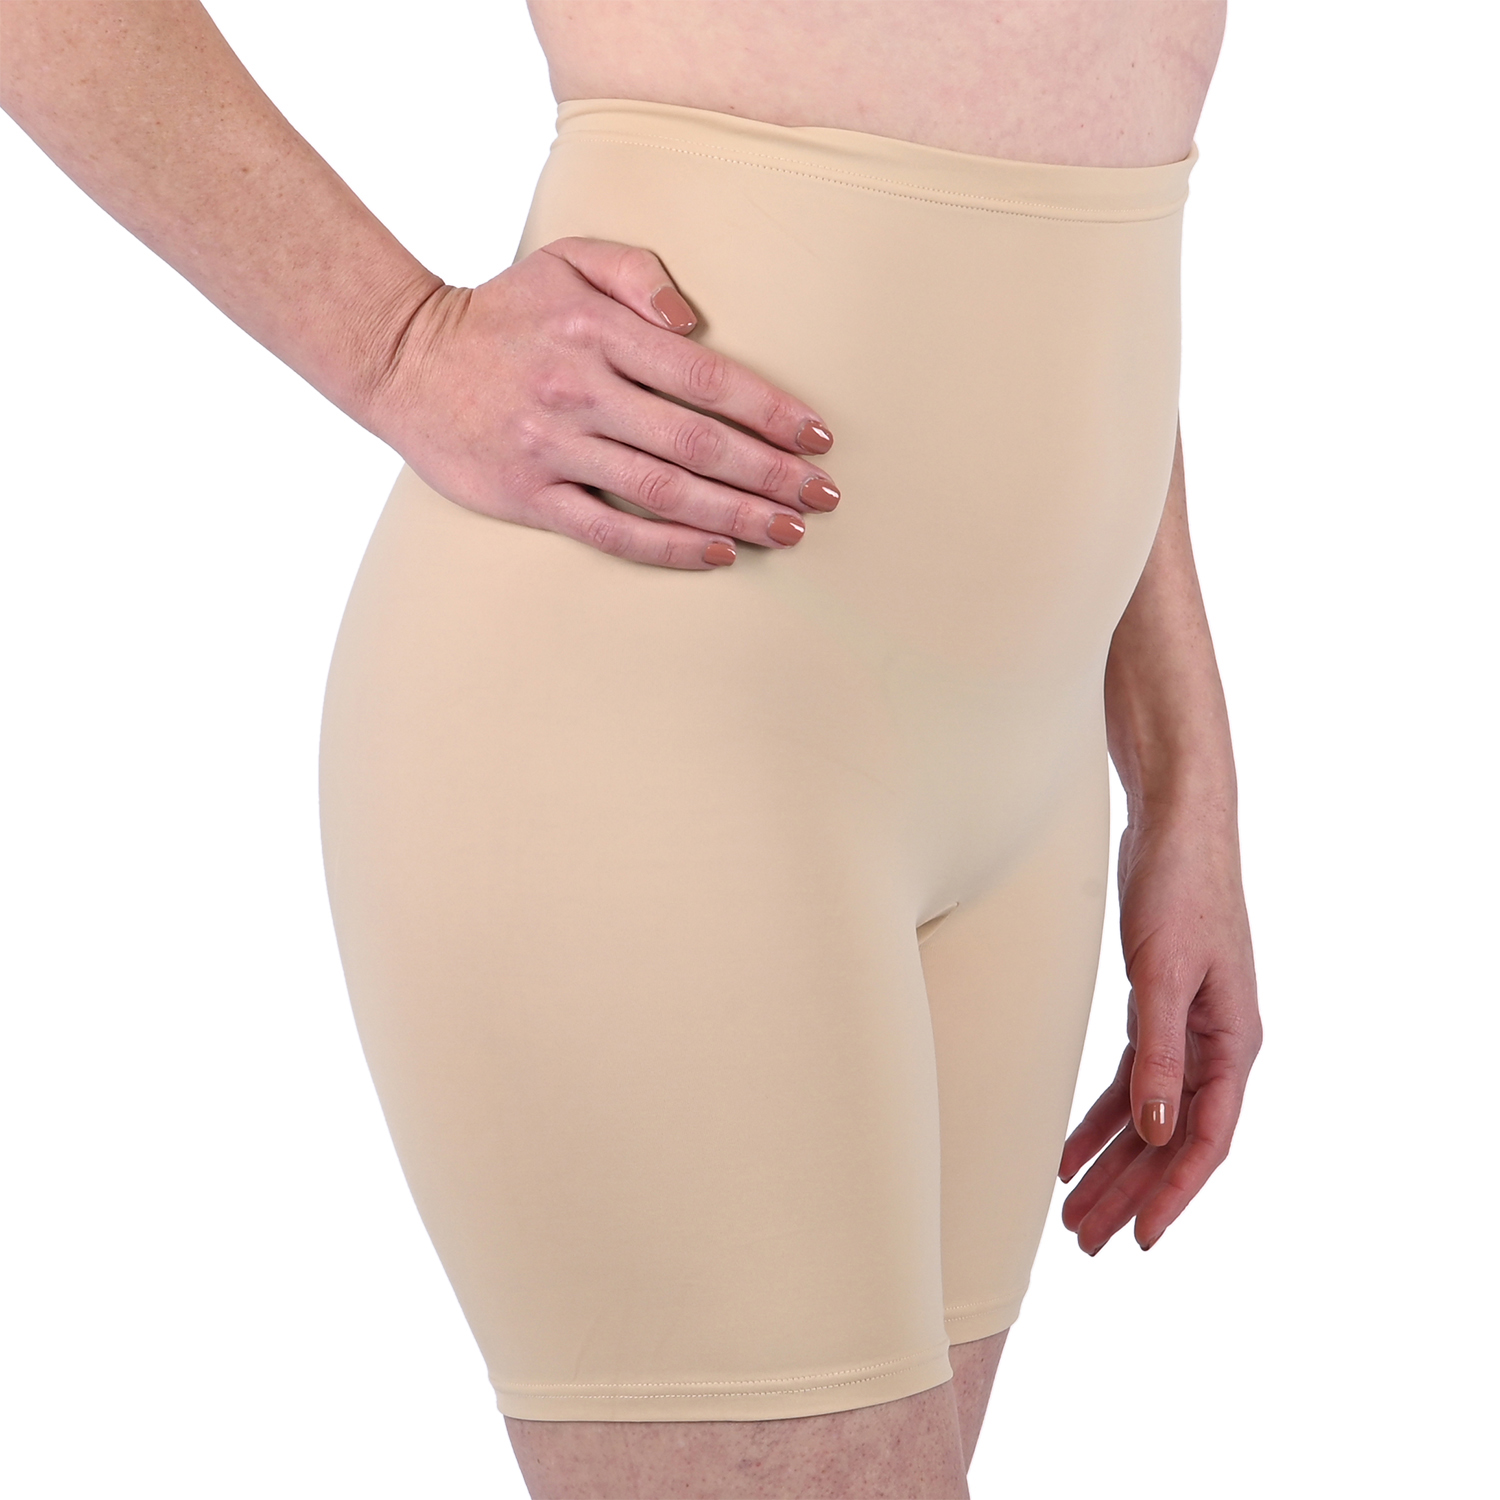 Maidenform Smoothing Cool Comfort Thigh Slimmer - Nude